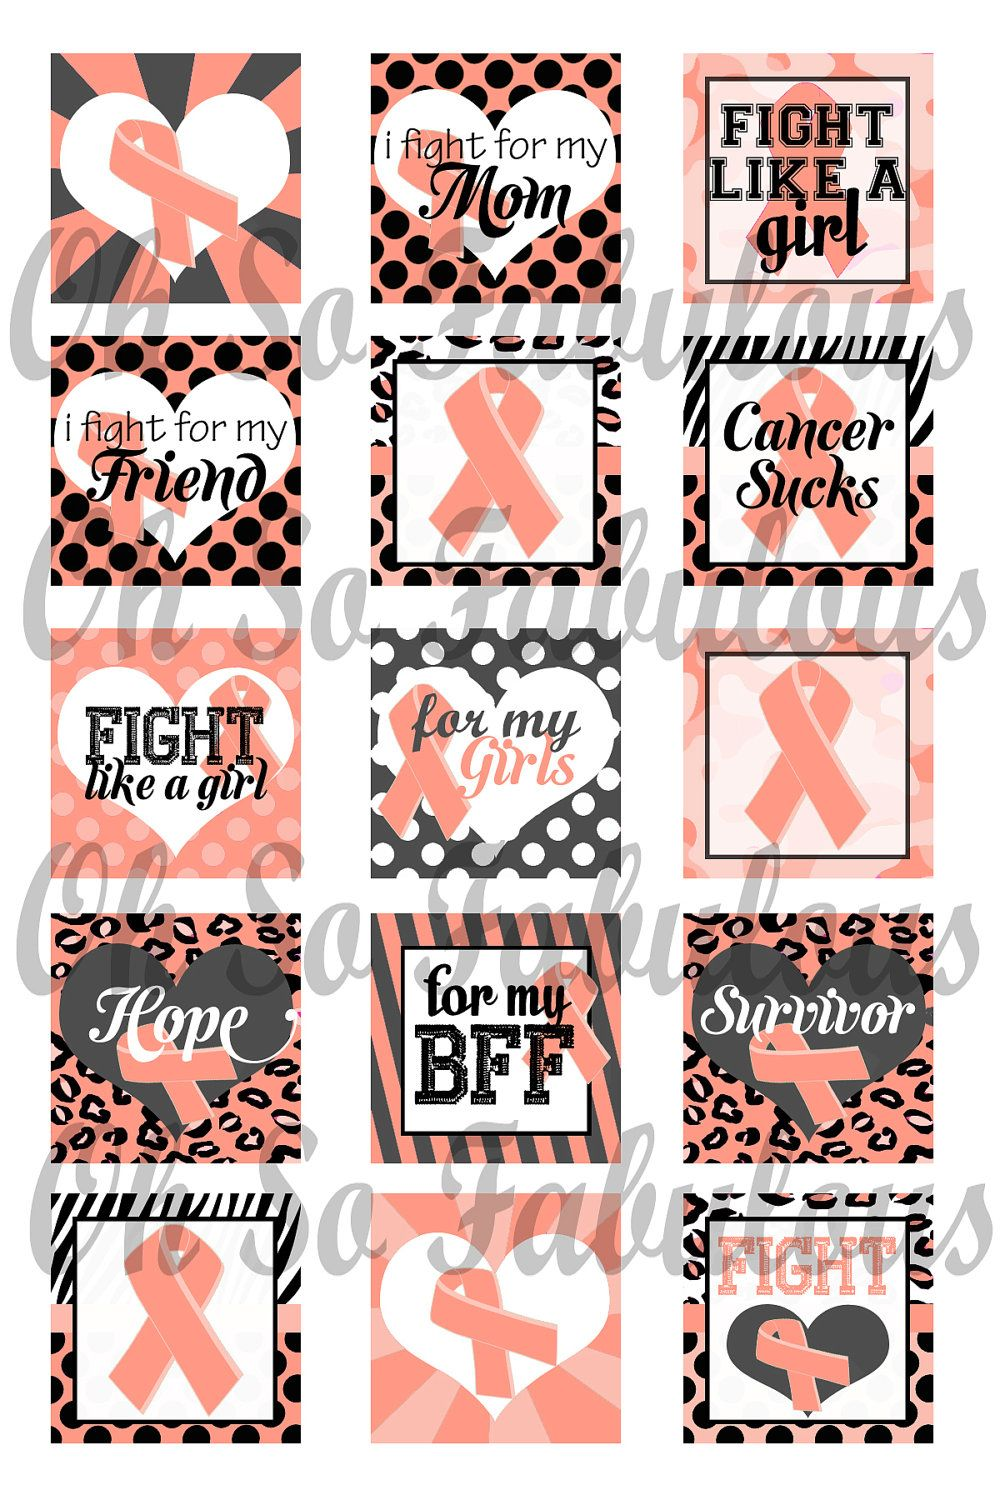 Uterine cancer awareness peach ribbon 1 inch squares images uterine cancer awareness peach ribbon 1 inch squares images digital printable file 4x6 200 buycottarizona